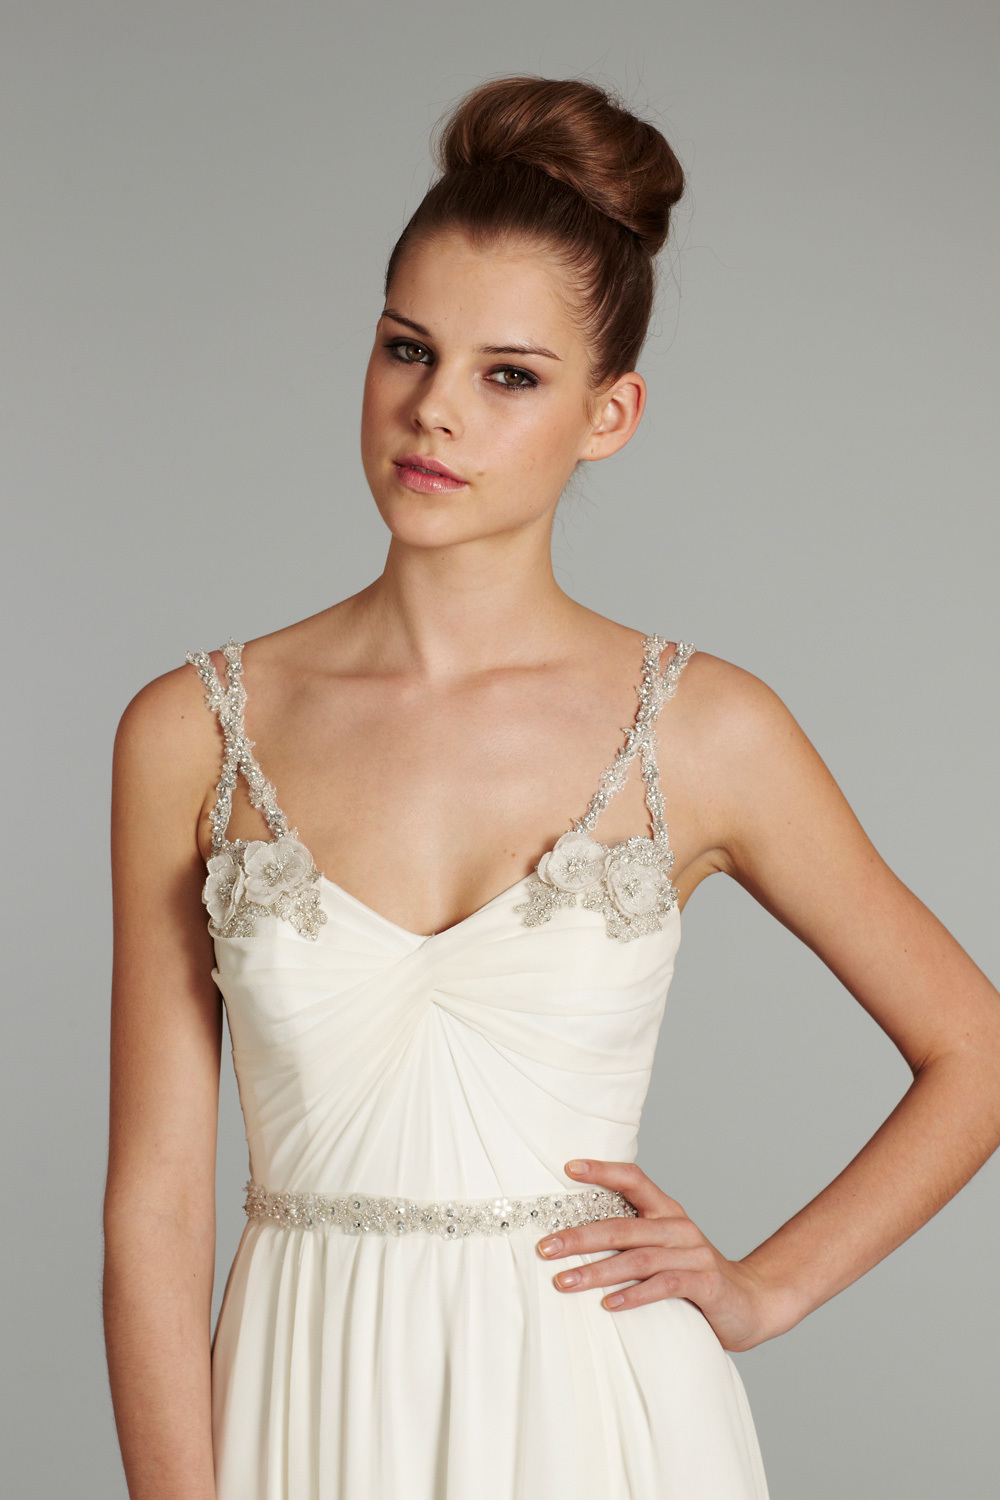 bridal gown wedding dress jlm hayley paige fall 2012 nina front